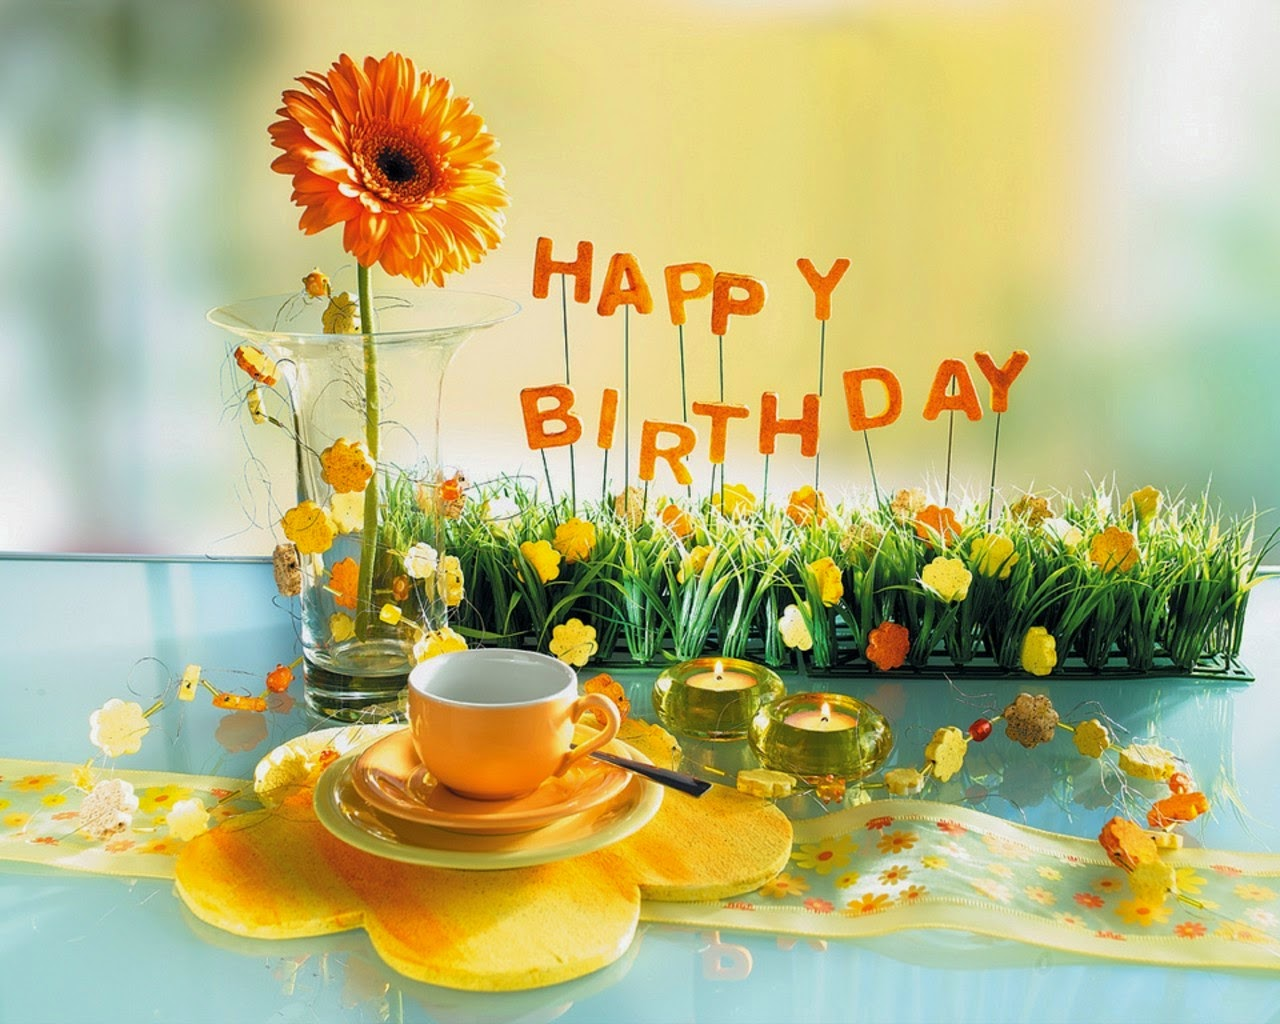 100 Cute Happy Birthday Quotes Wishes For Friends And Family